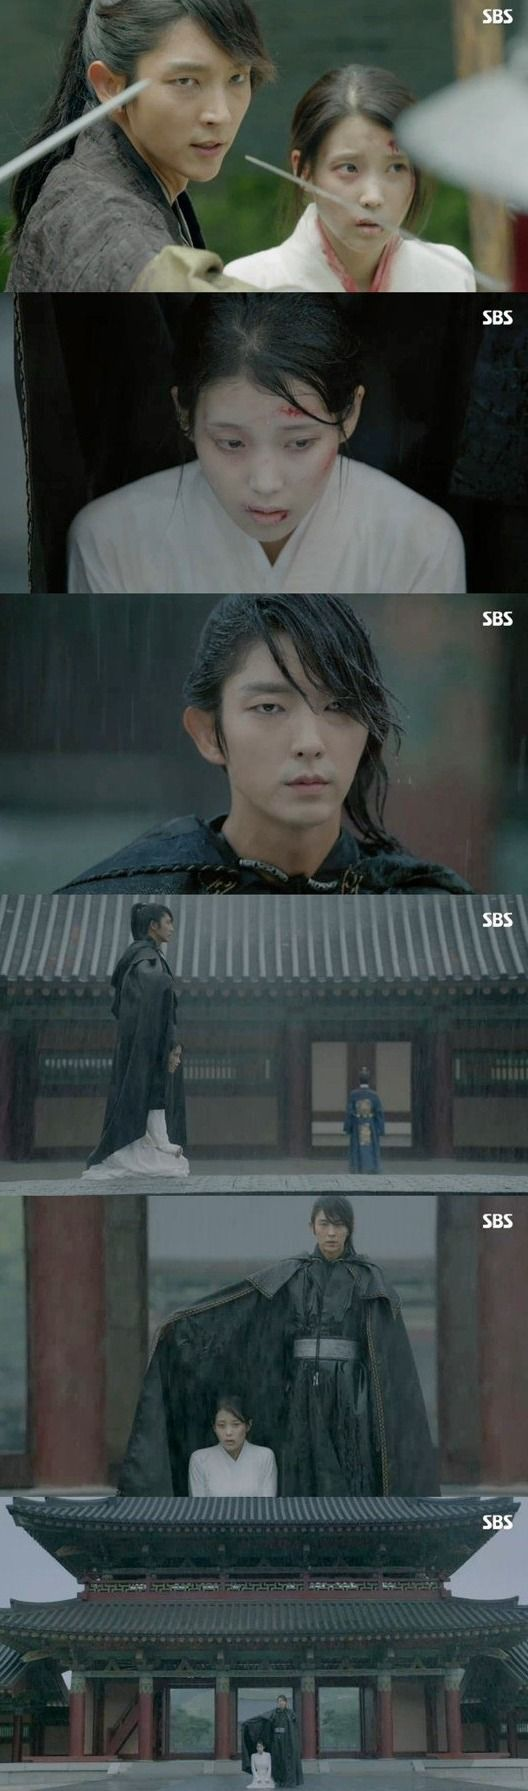 [Spoiler] Added episode 11 captures for the #kdrama 'Scarlet Heart: Ryeo'